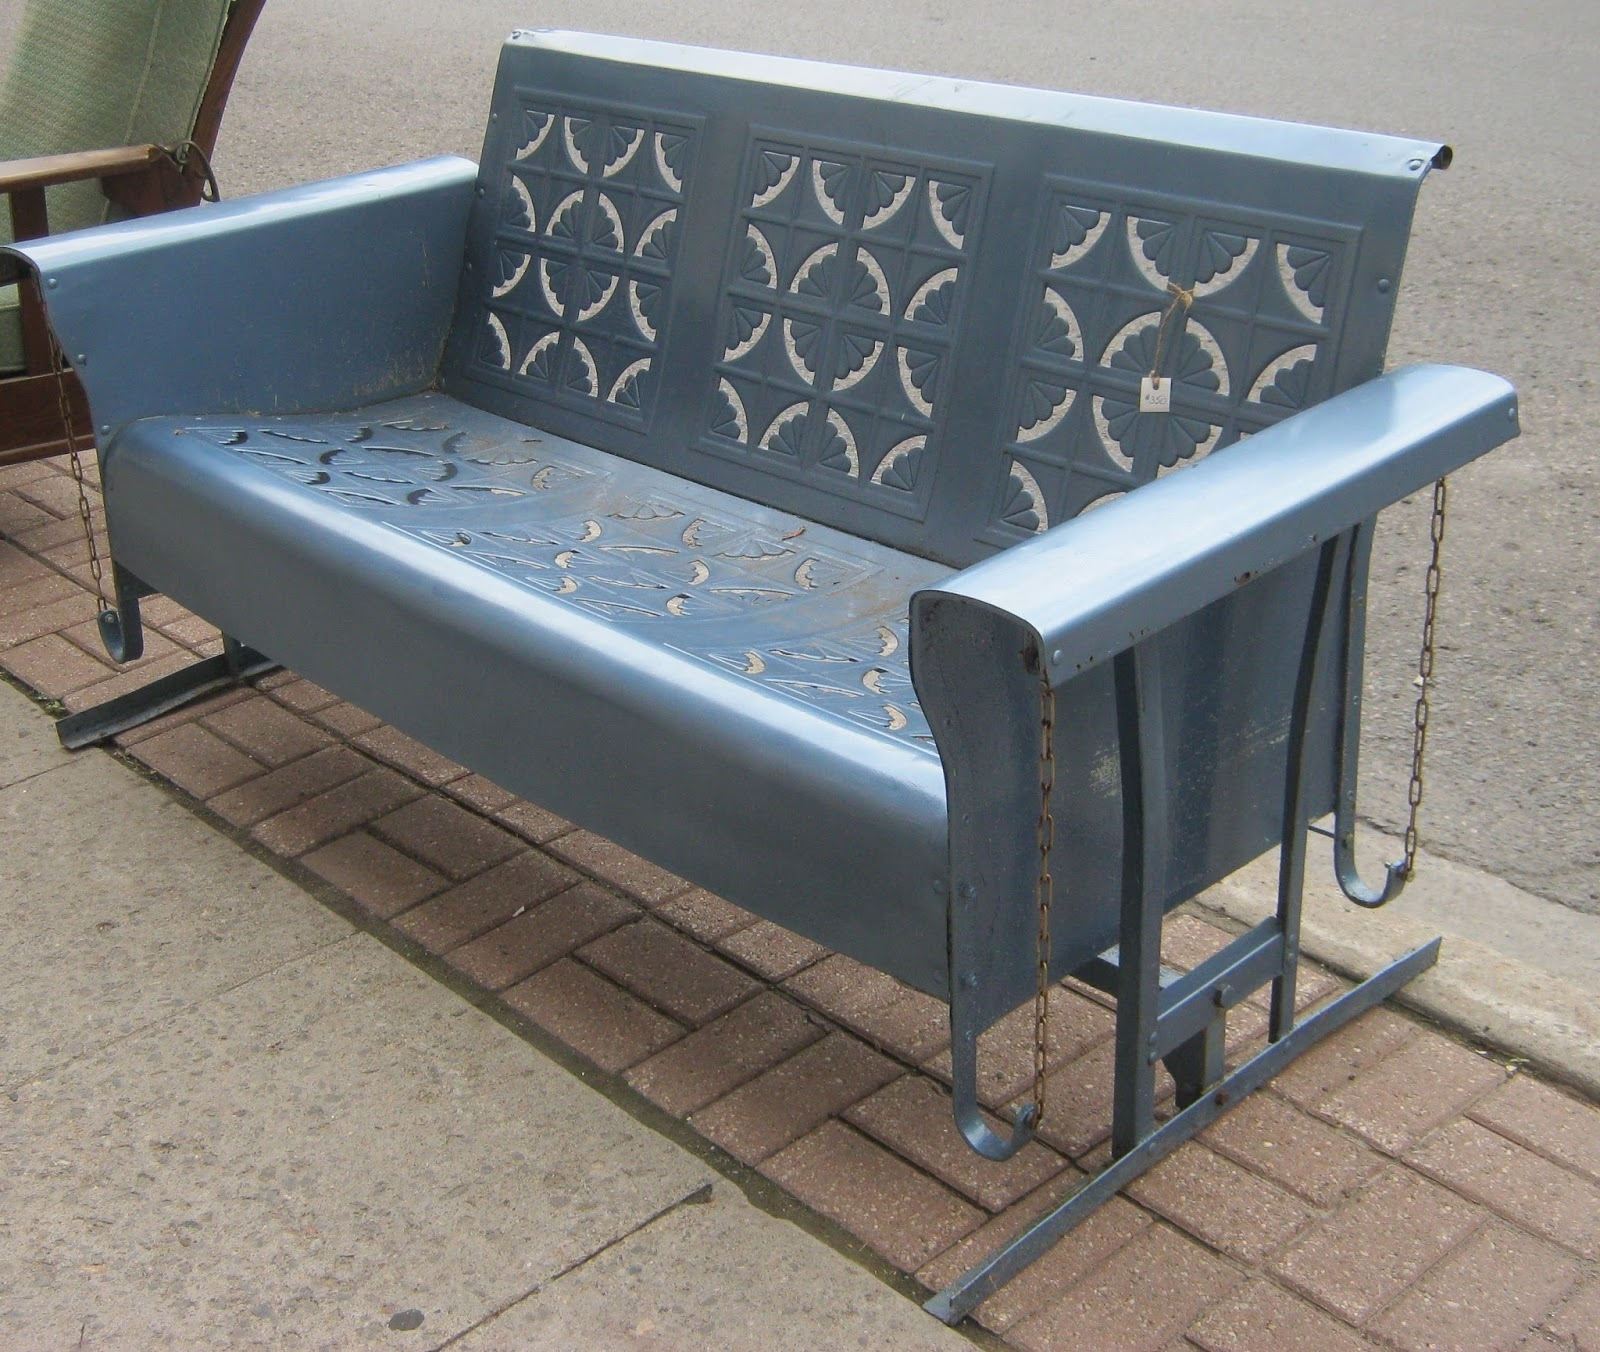 Vintage Metal Porch Glider — Randolph Indoor And Outdoor Design With Regard To Steel Patio Swing Glider Benches (View 7 of 25)